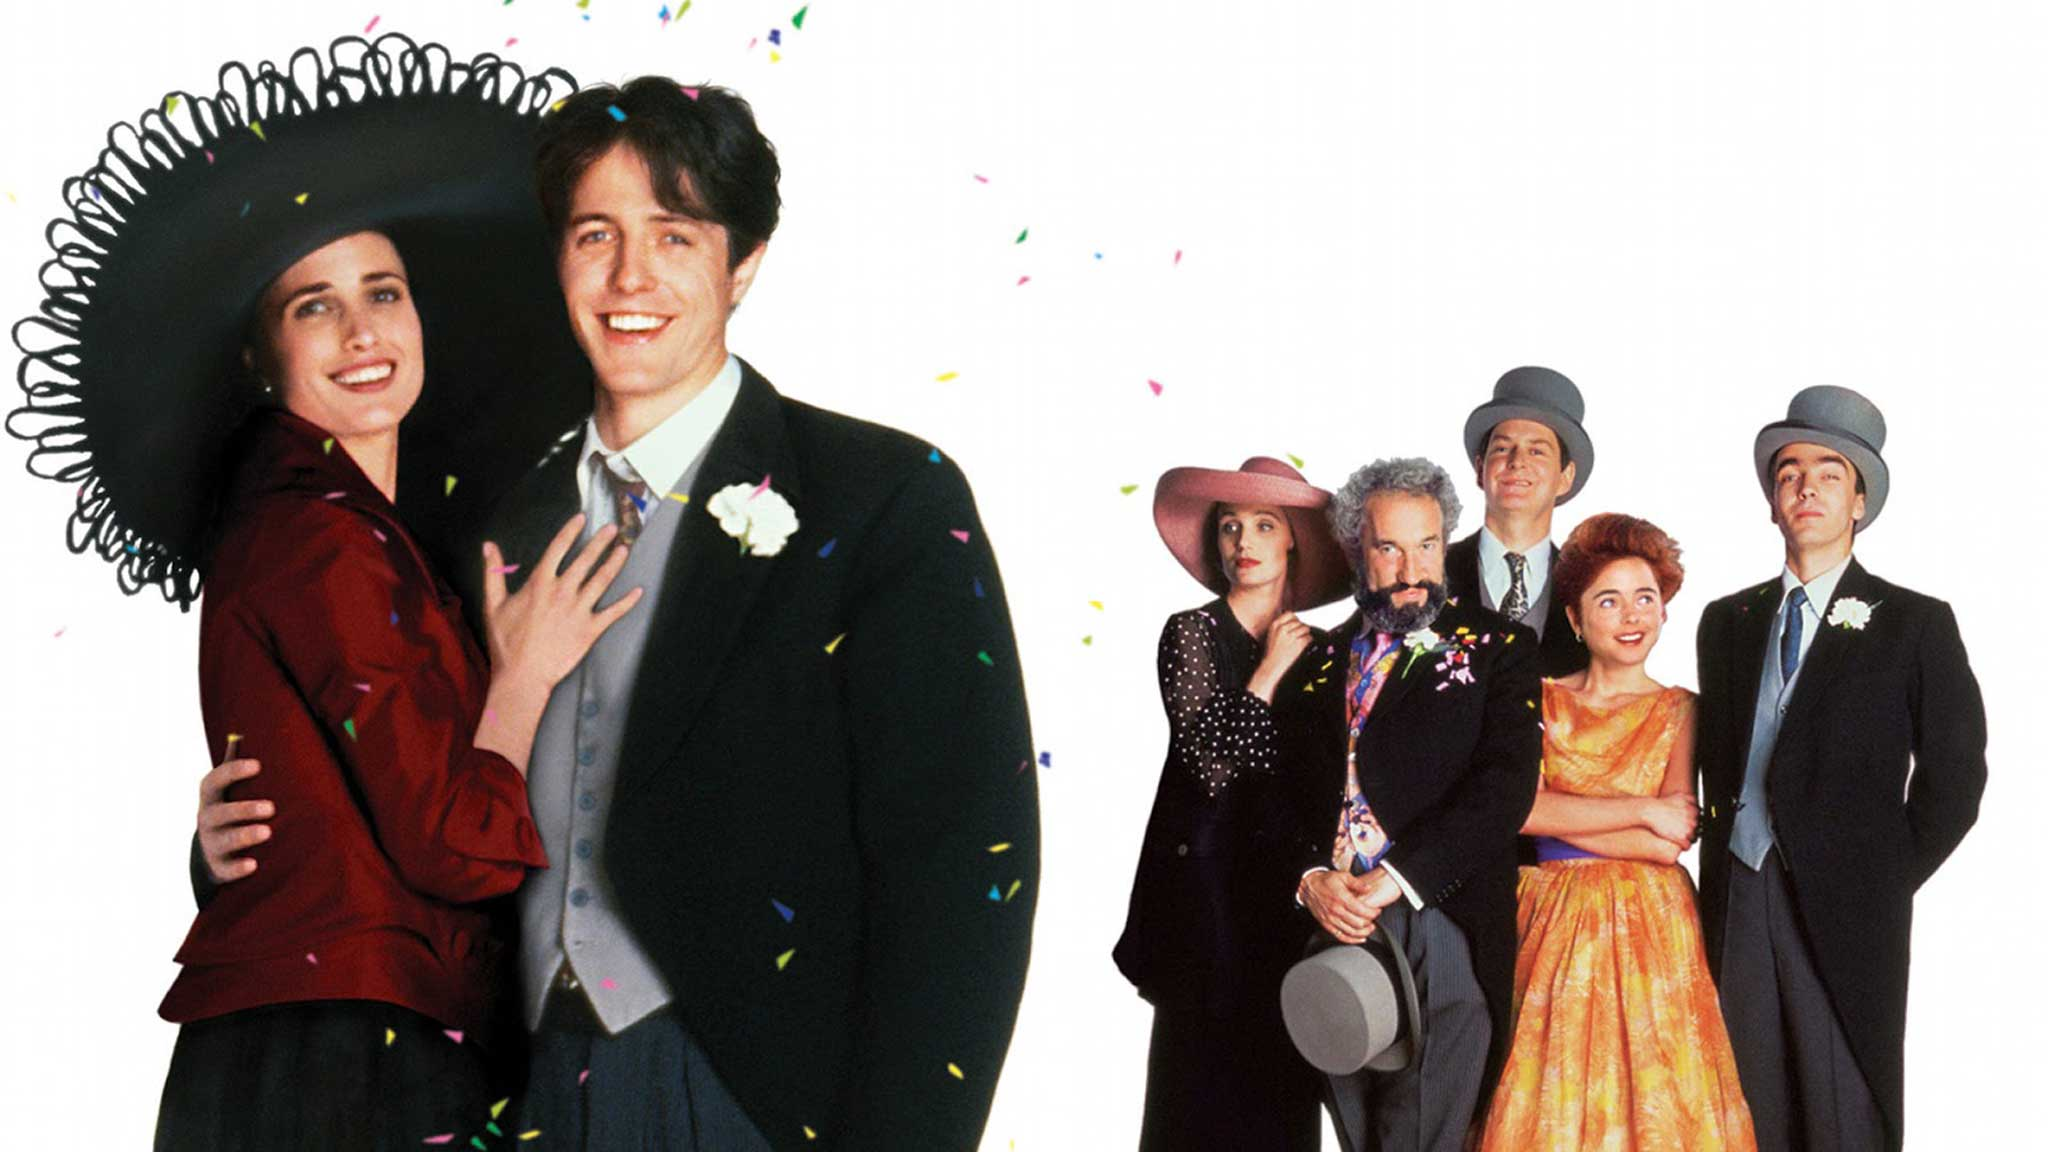 Busting The BritWedCom Boom Since Four Weddings And A Funeral Conquered All UK Films Have Been Trying To Recreate Magic